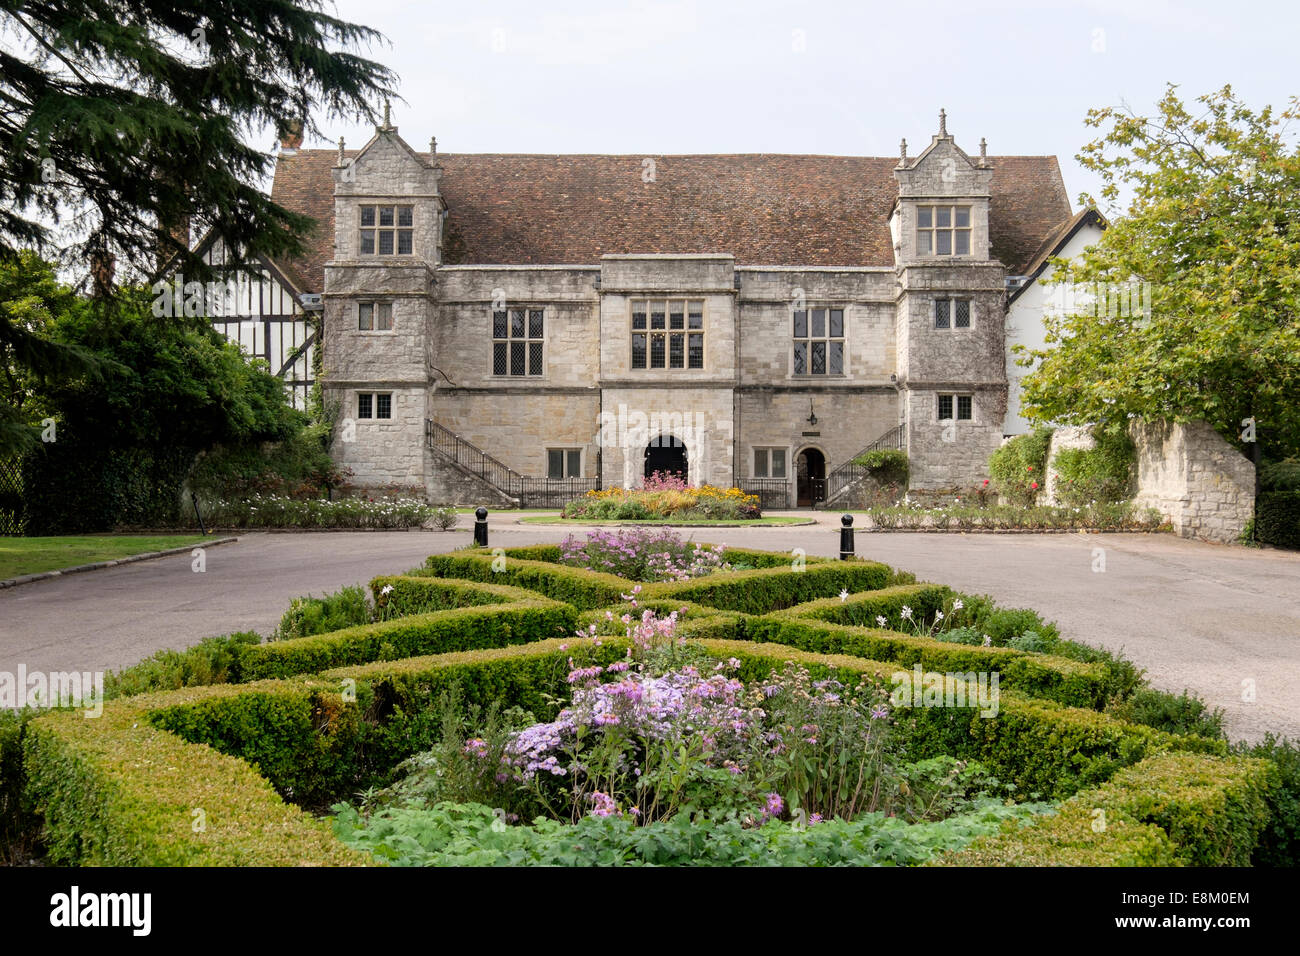 The 16th century Archbishop's Palace is now used as a register office wedding venue in Maidstone, Kent, England, - Stock Image